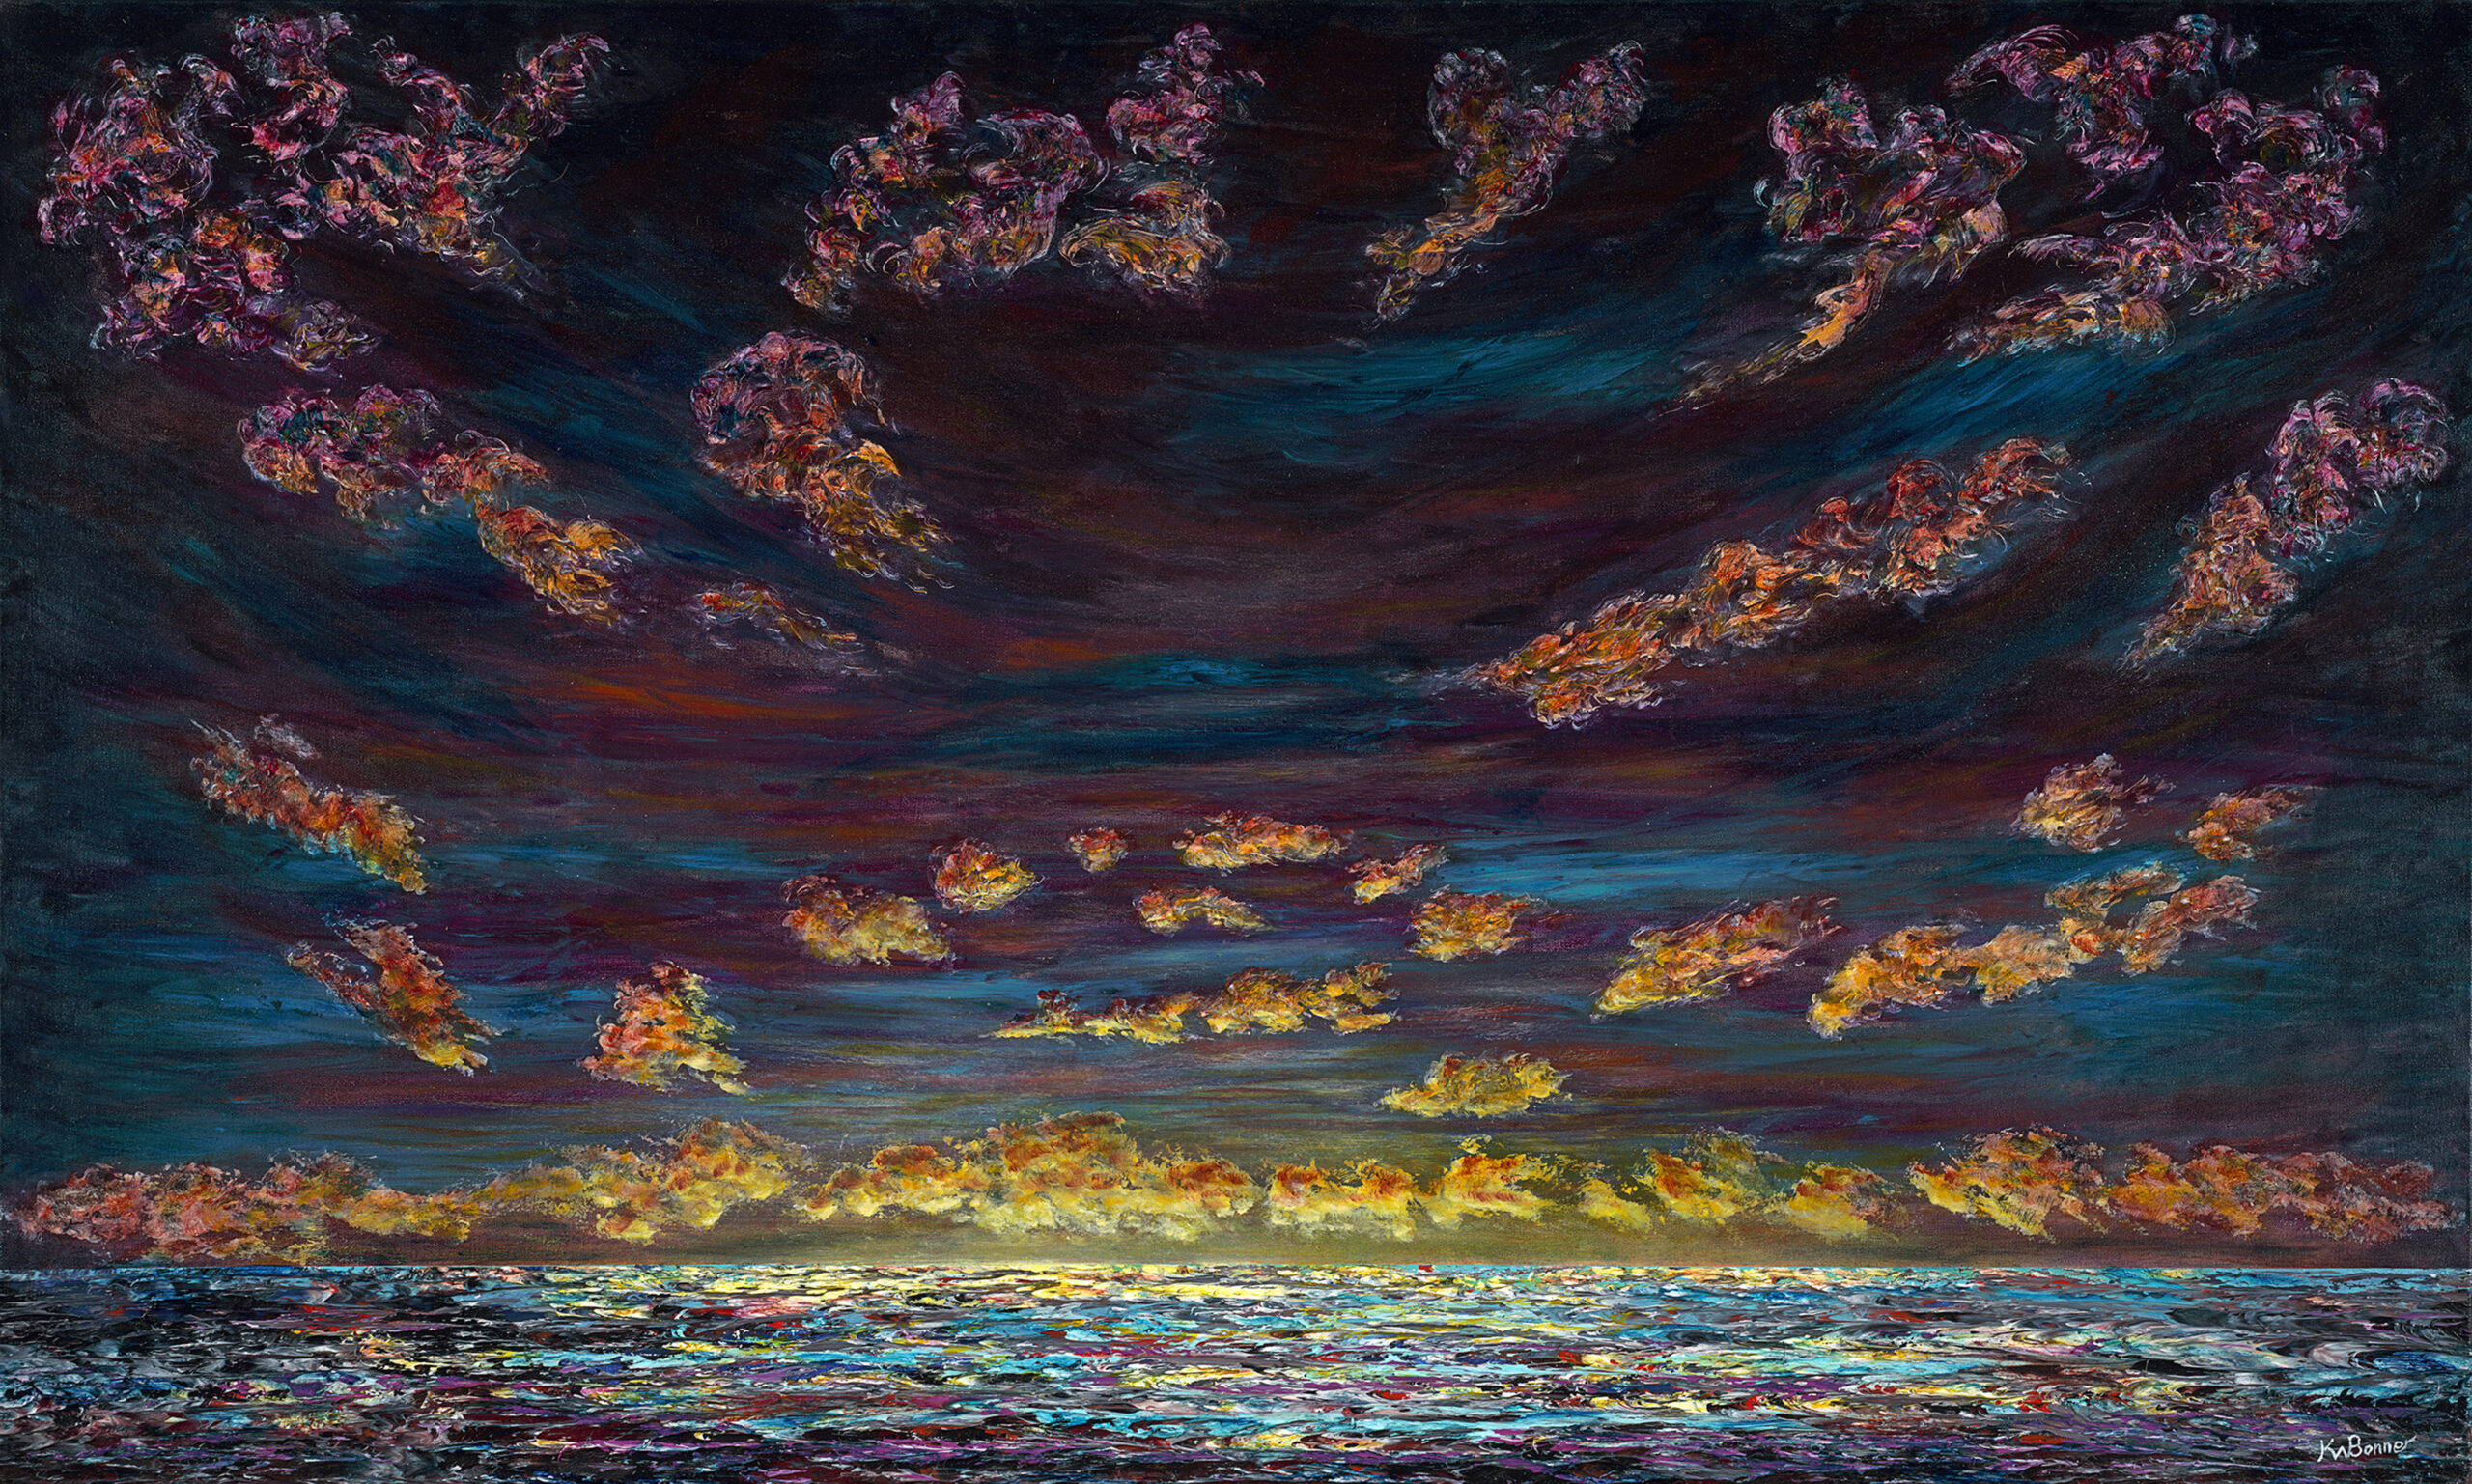 All the Colors of the Morning | Seascapes | Ken Bonner Original Oil Paintings | Santa Fe New Mexico